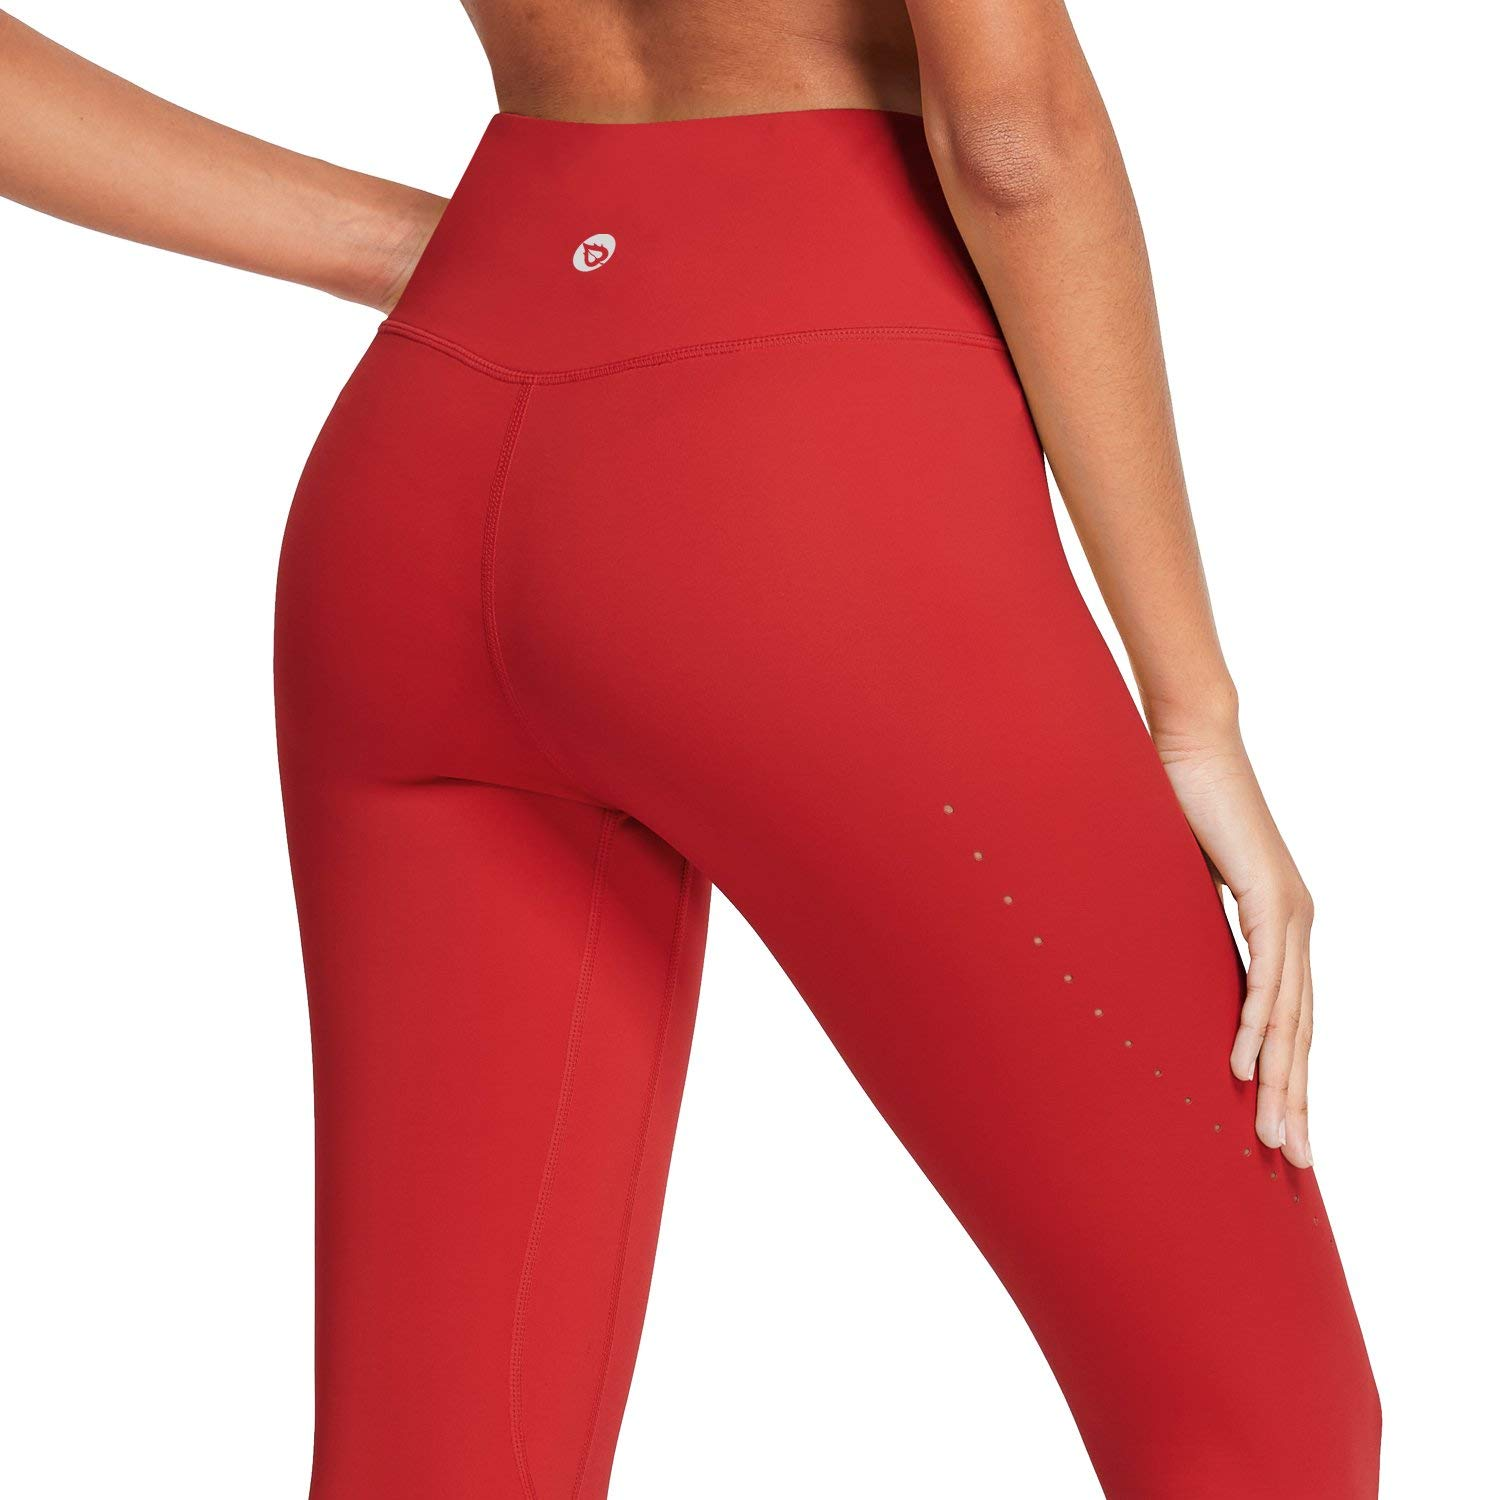 BALEAF 7/8 Women's Buttery Soft High Waisted Air Hole Design Yoga Leggings Tummy Control Opaque Workout Pants